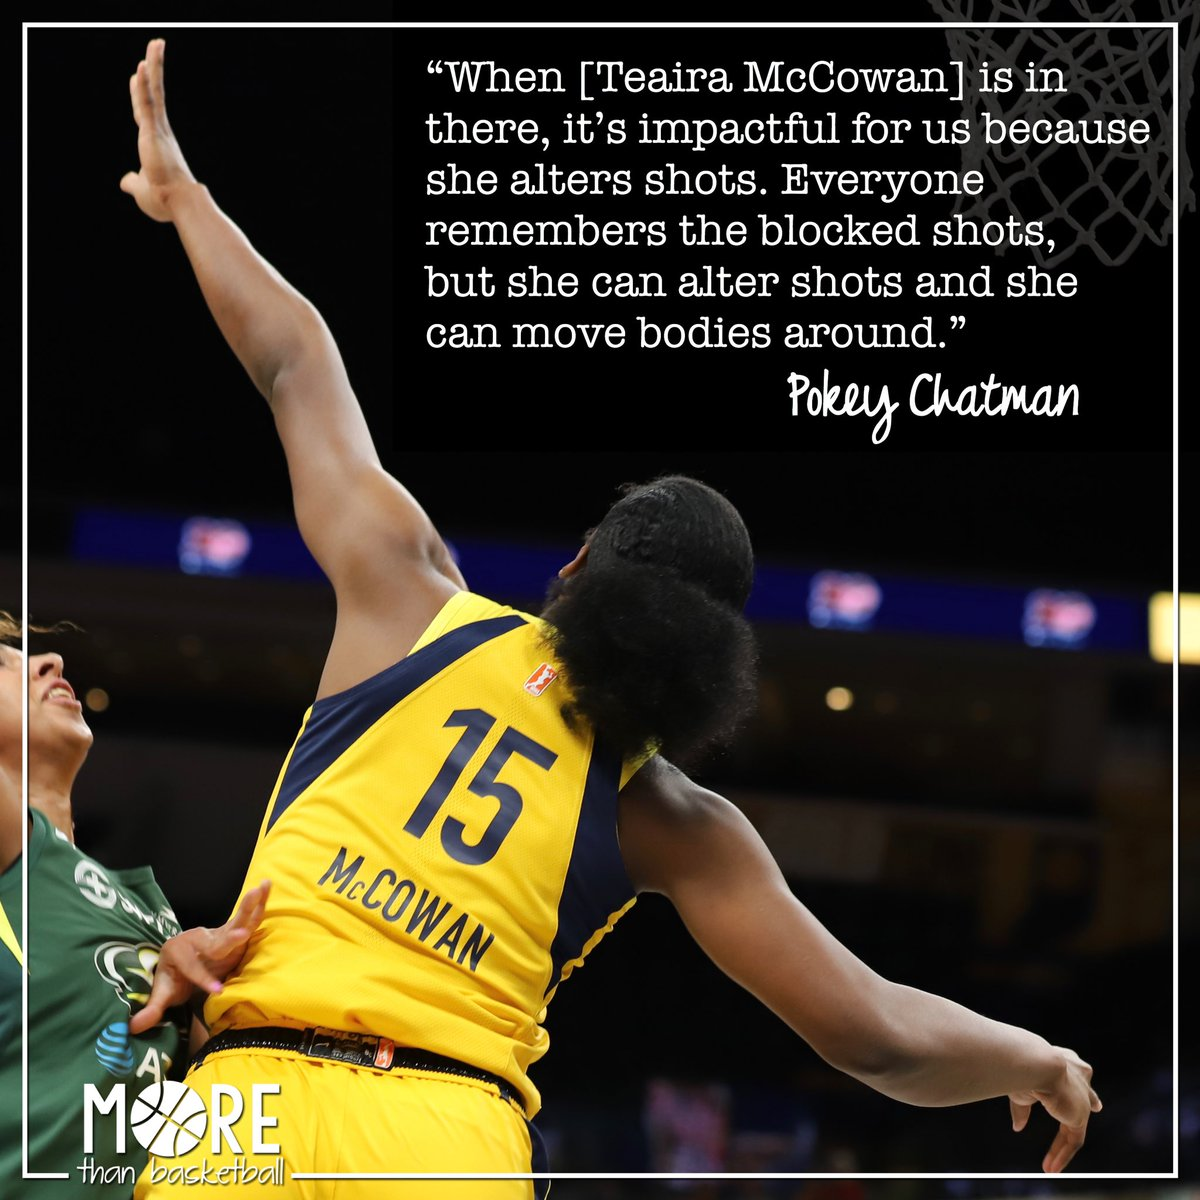 Head coach @pokeychatman knows @Teaira_15 is more than a blocking machine- her presence on the court alters shots and that's equally impactful in the @indianafever's defensive strategy. . #teairamccowan #allforlove #indianafever #fever20